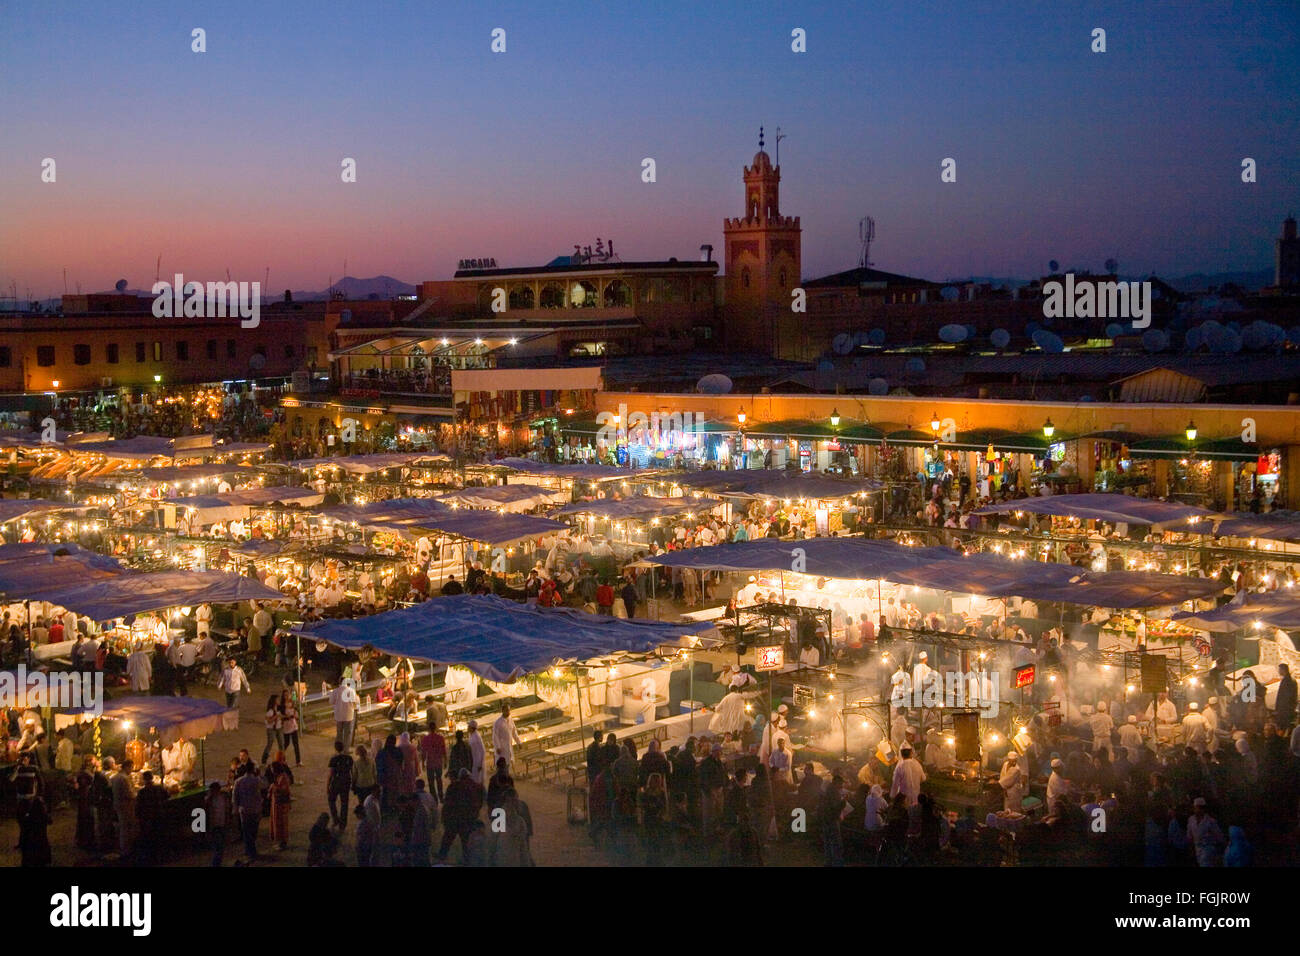 Evening cafes and stalls in Jemaa El Fna Square. Marrakech, Morocco - Stock Image